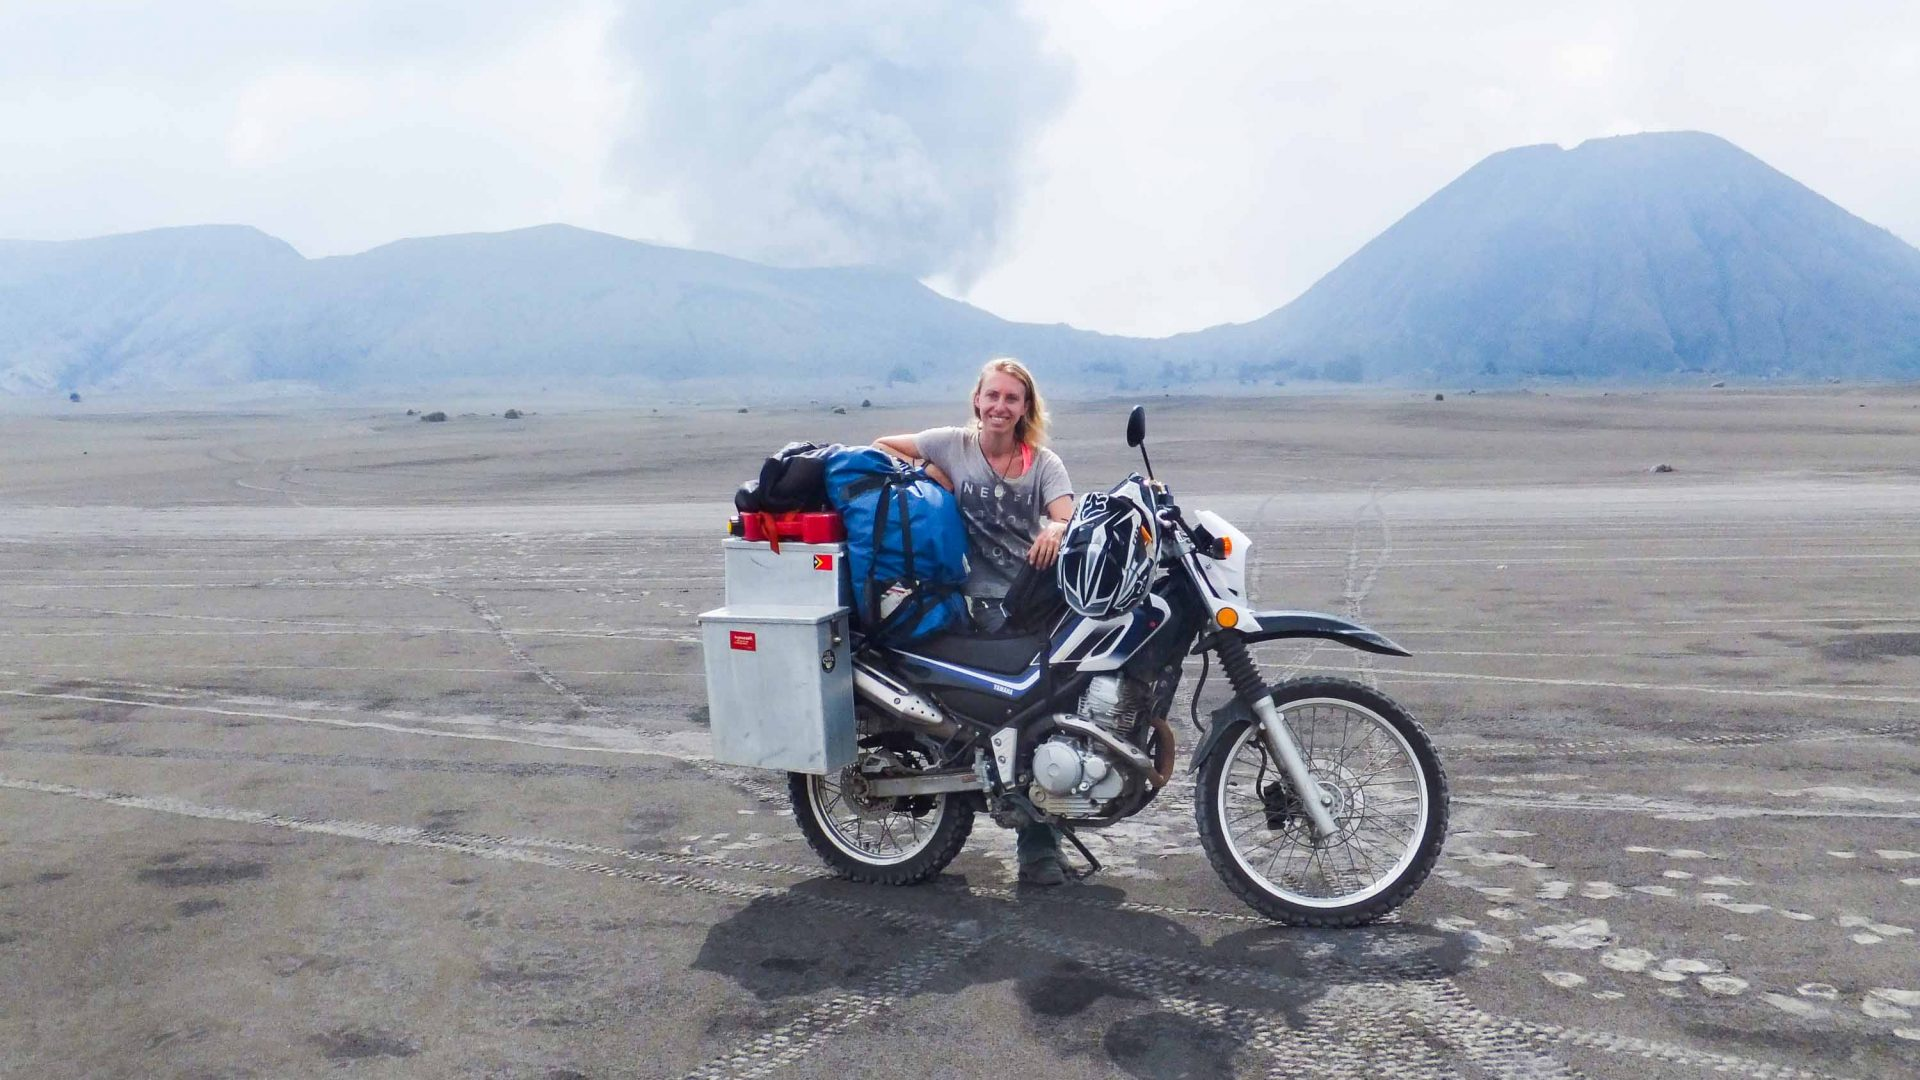 Chantal Simons with her bike at Mount Bromo volcano in Indonesia.